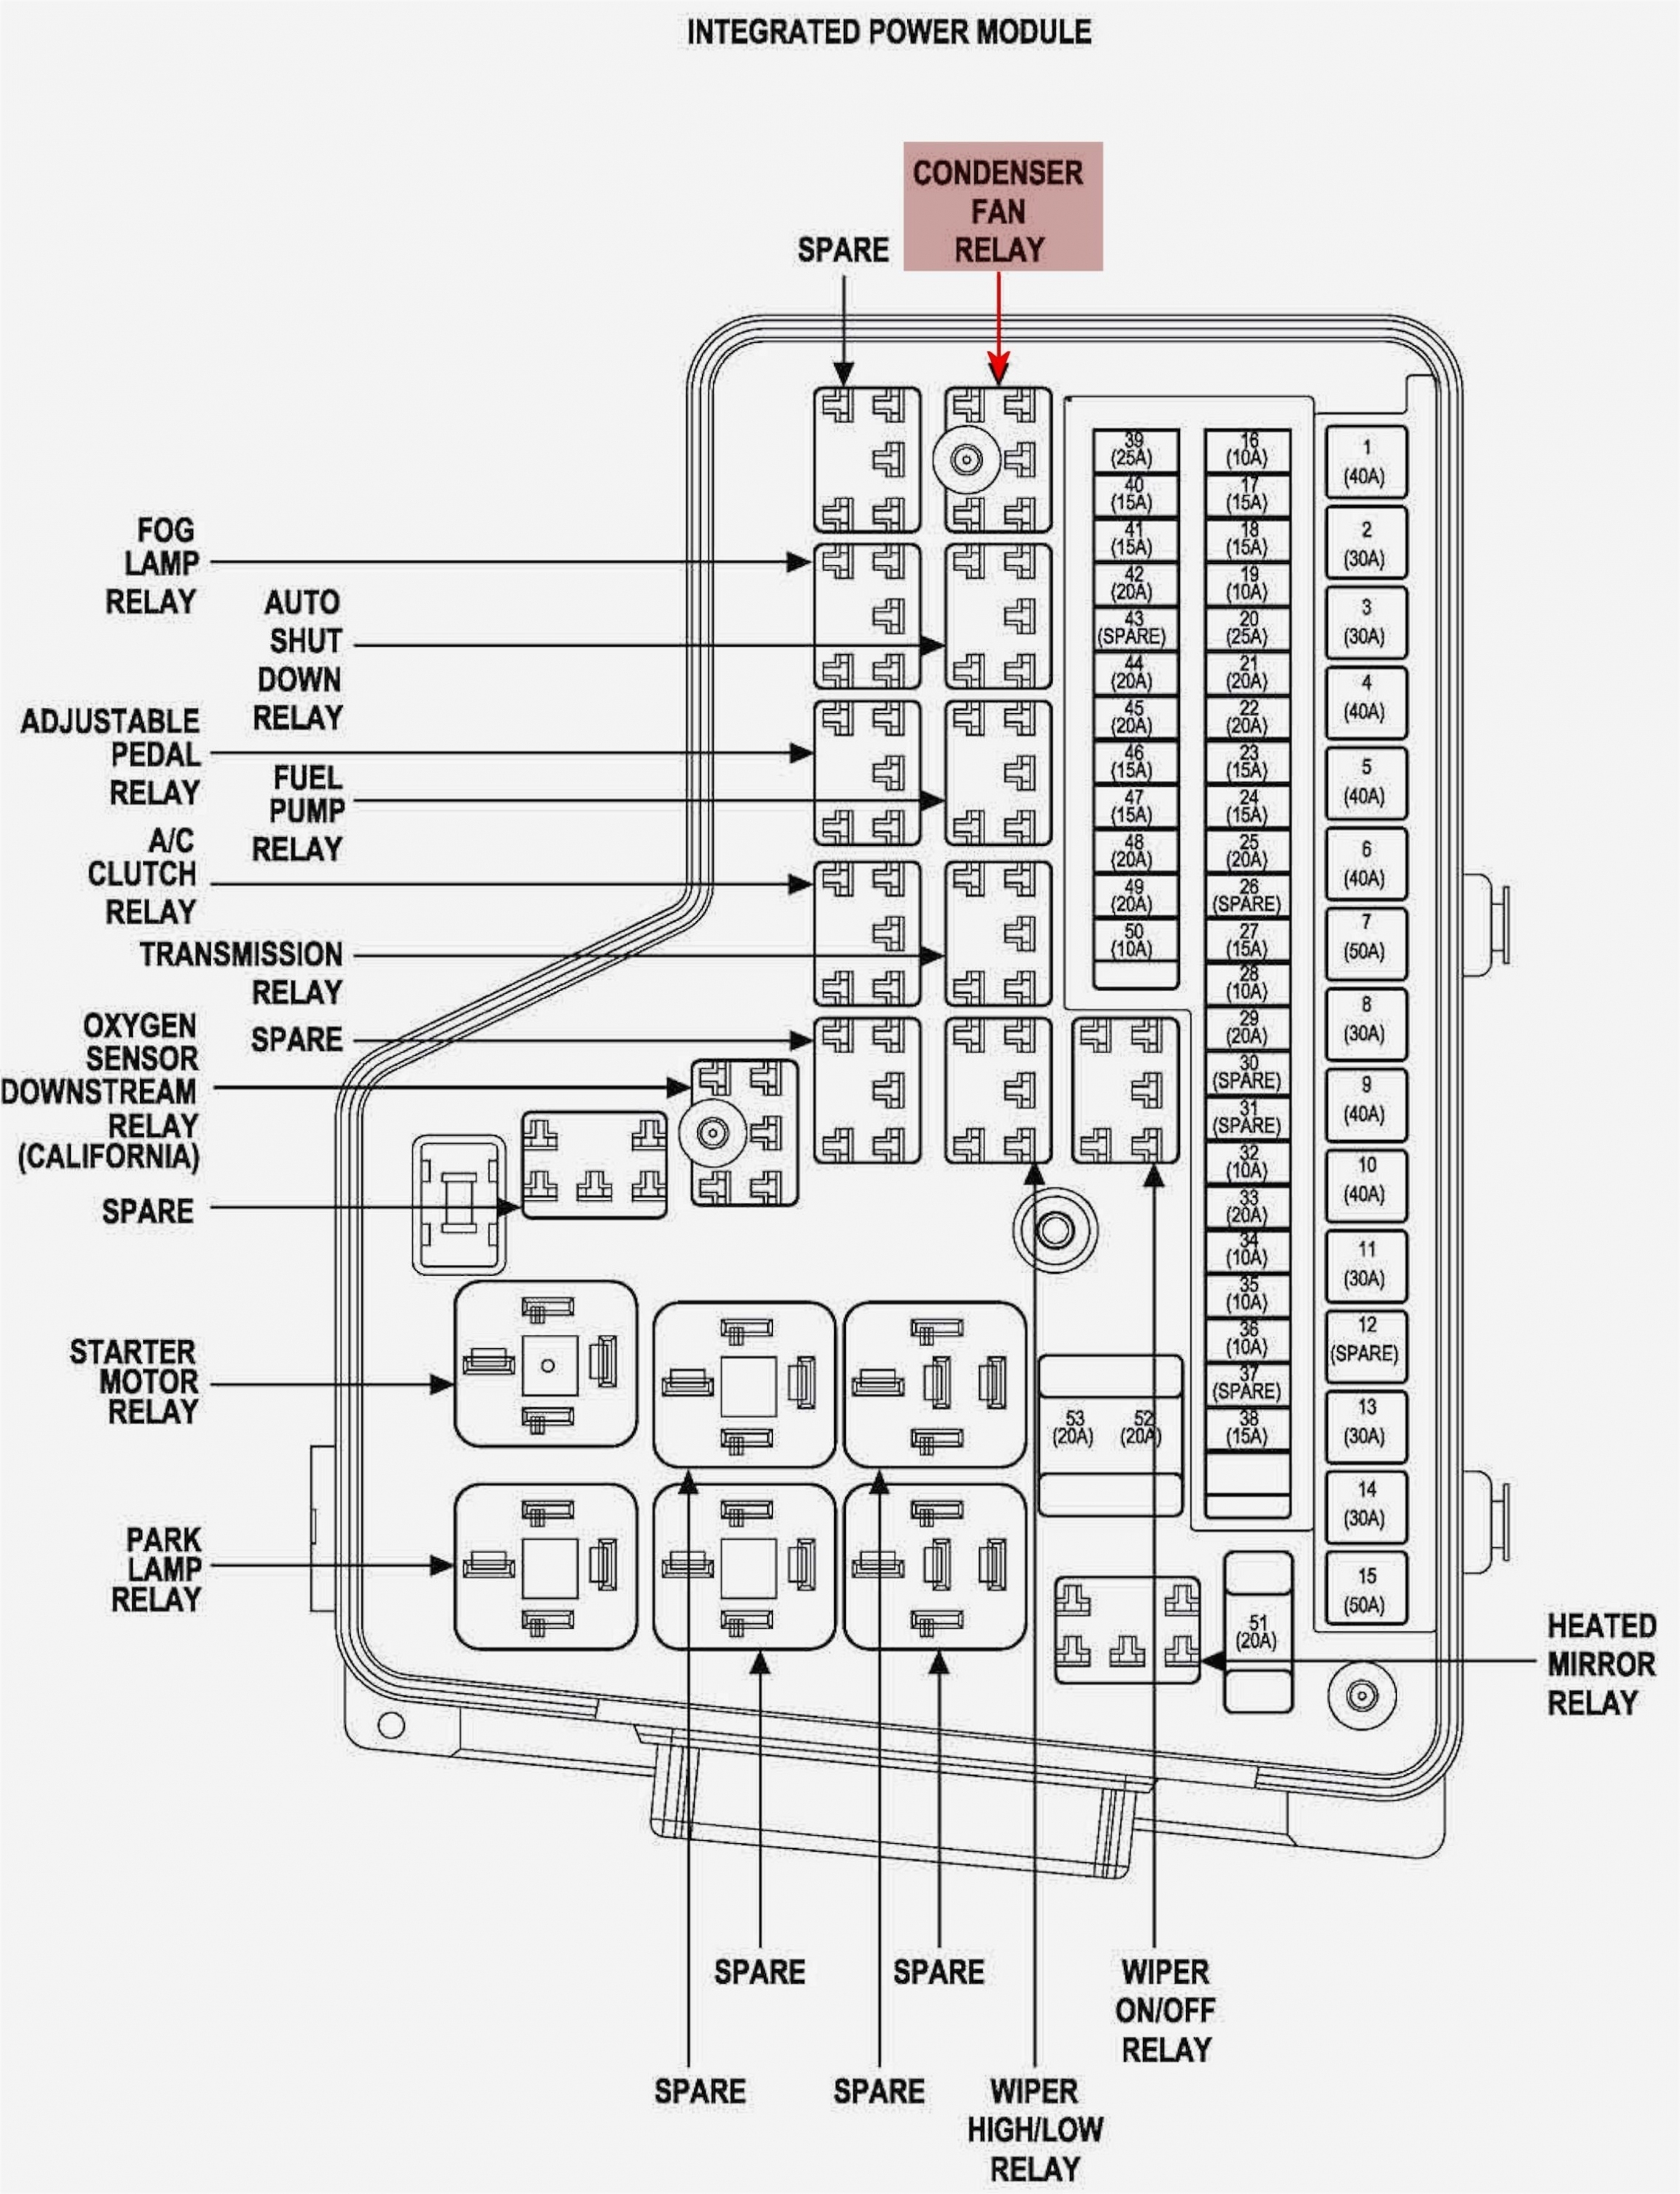 Incredible Fuse Box Location 2004 Dodge Ram 1500 Wiring Diagram Wiring Cloud Peadfoxcilixyz